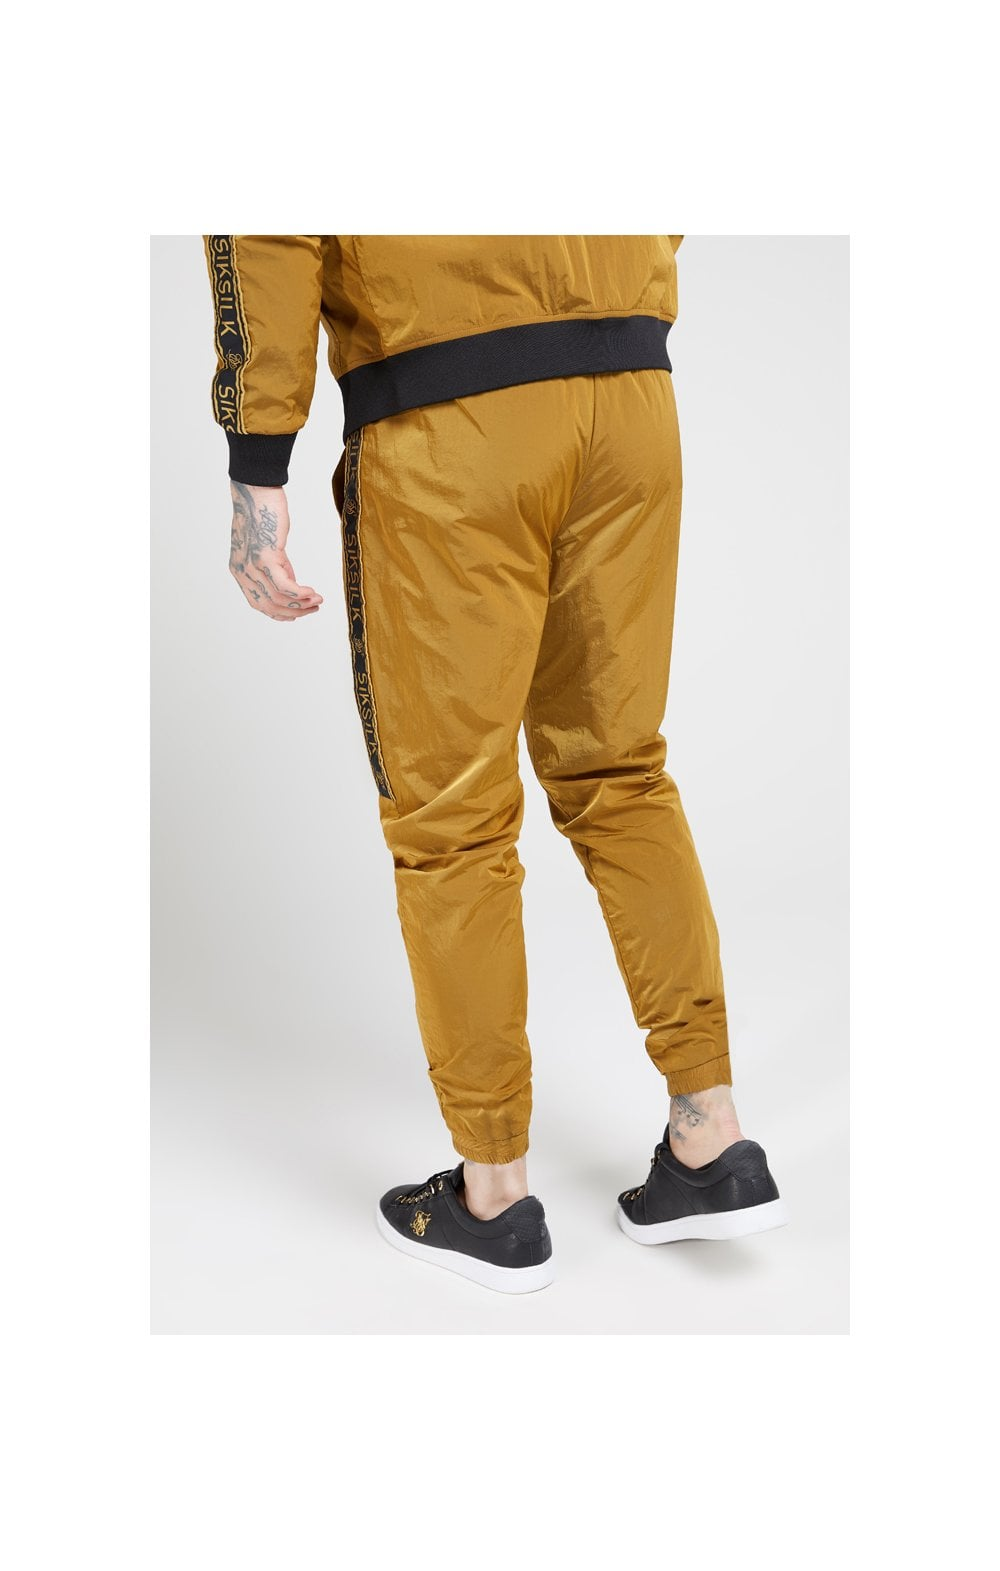 Load image into Gallery viewer, SikSilk Crushed Nylon Taped Joggers – Golden Mustard (2)